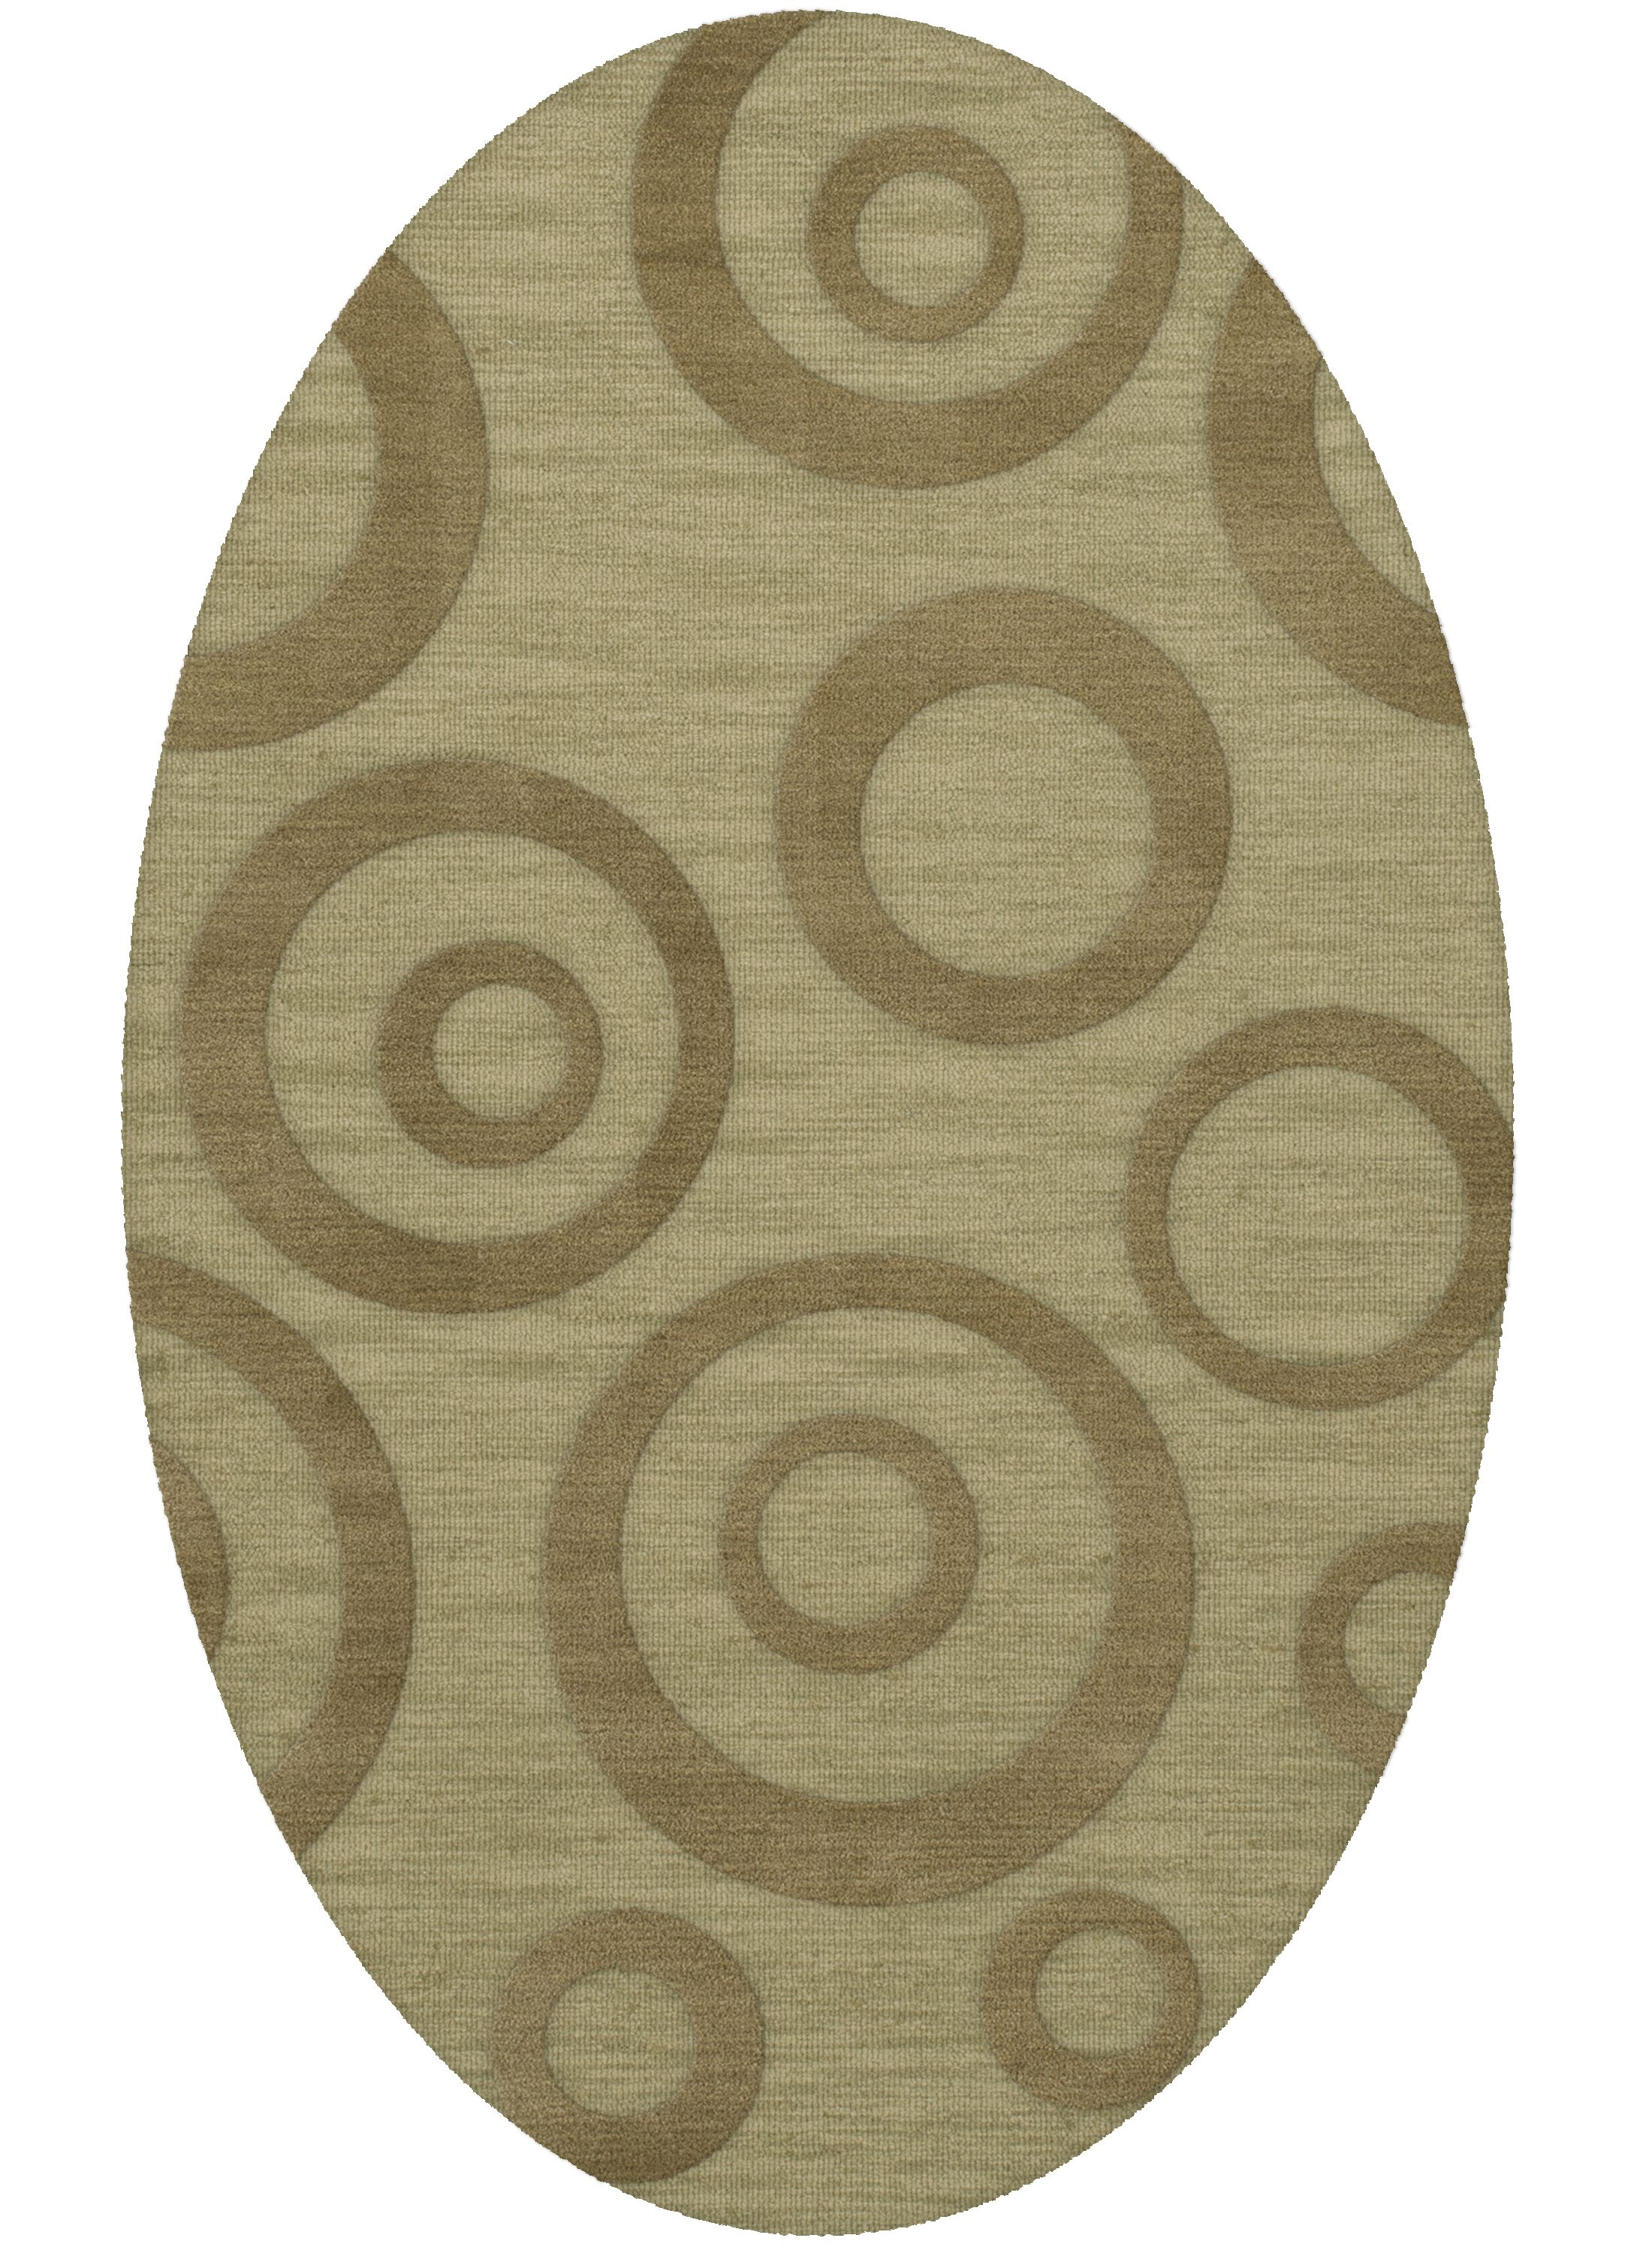 Dover Tufted Wool Marsh Area Rug Rug Size: Oval 10' x 14'